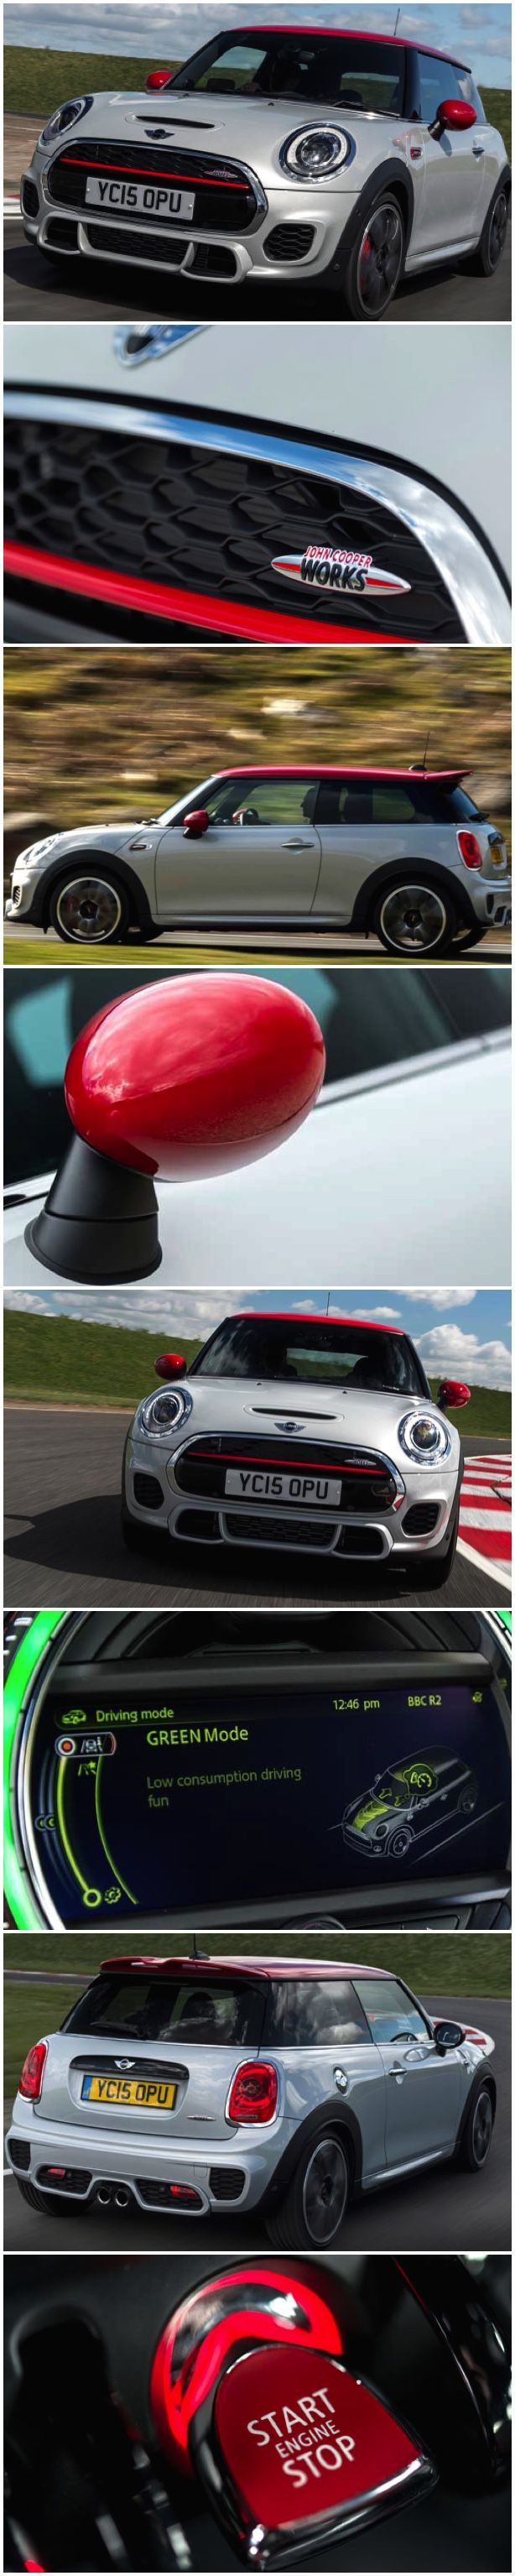 The latest, greatest, NEW MINI John Cooper Works. The Most Powerful production MINI, full stop. Manic, Wild, Deranged. As soon as you hit the throttle the New MINI you are struck with the ballistic performance of this car. Frenetic, Hectic, Frantic, Energetic. The JCW is, …very fast, the ultimate hot-hatch. These words are all in some ways just too harsh, the MINI JCW is all these things, but wrapped up in a complete package. #MINI #JohnCooperWorks #Hothatch #FUN